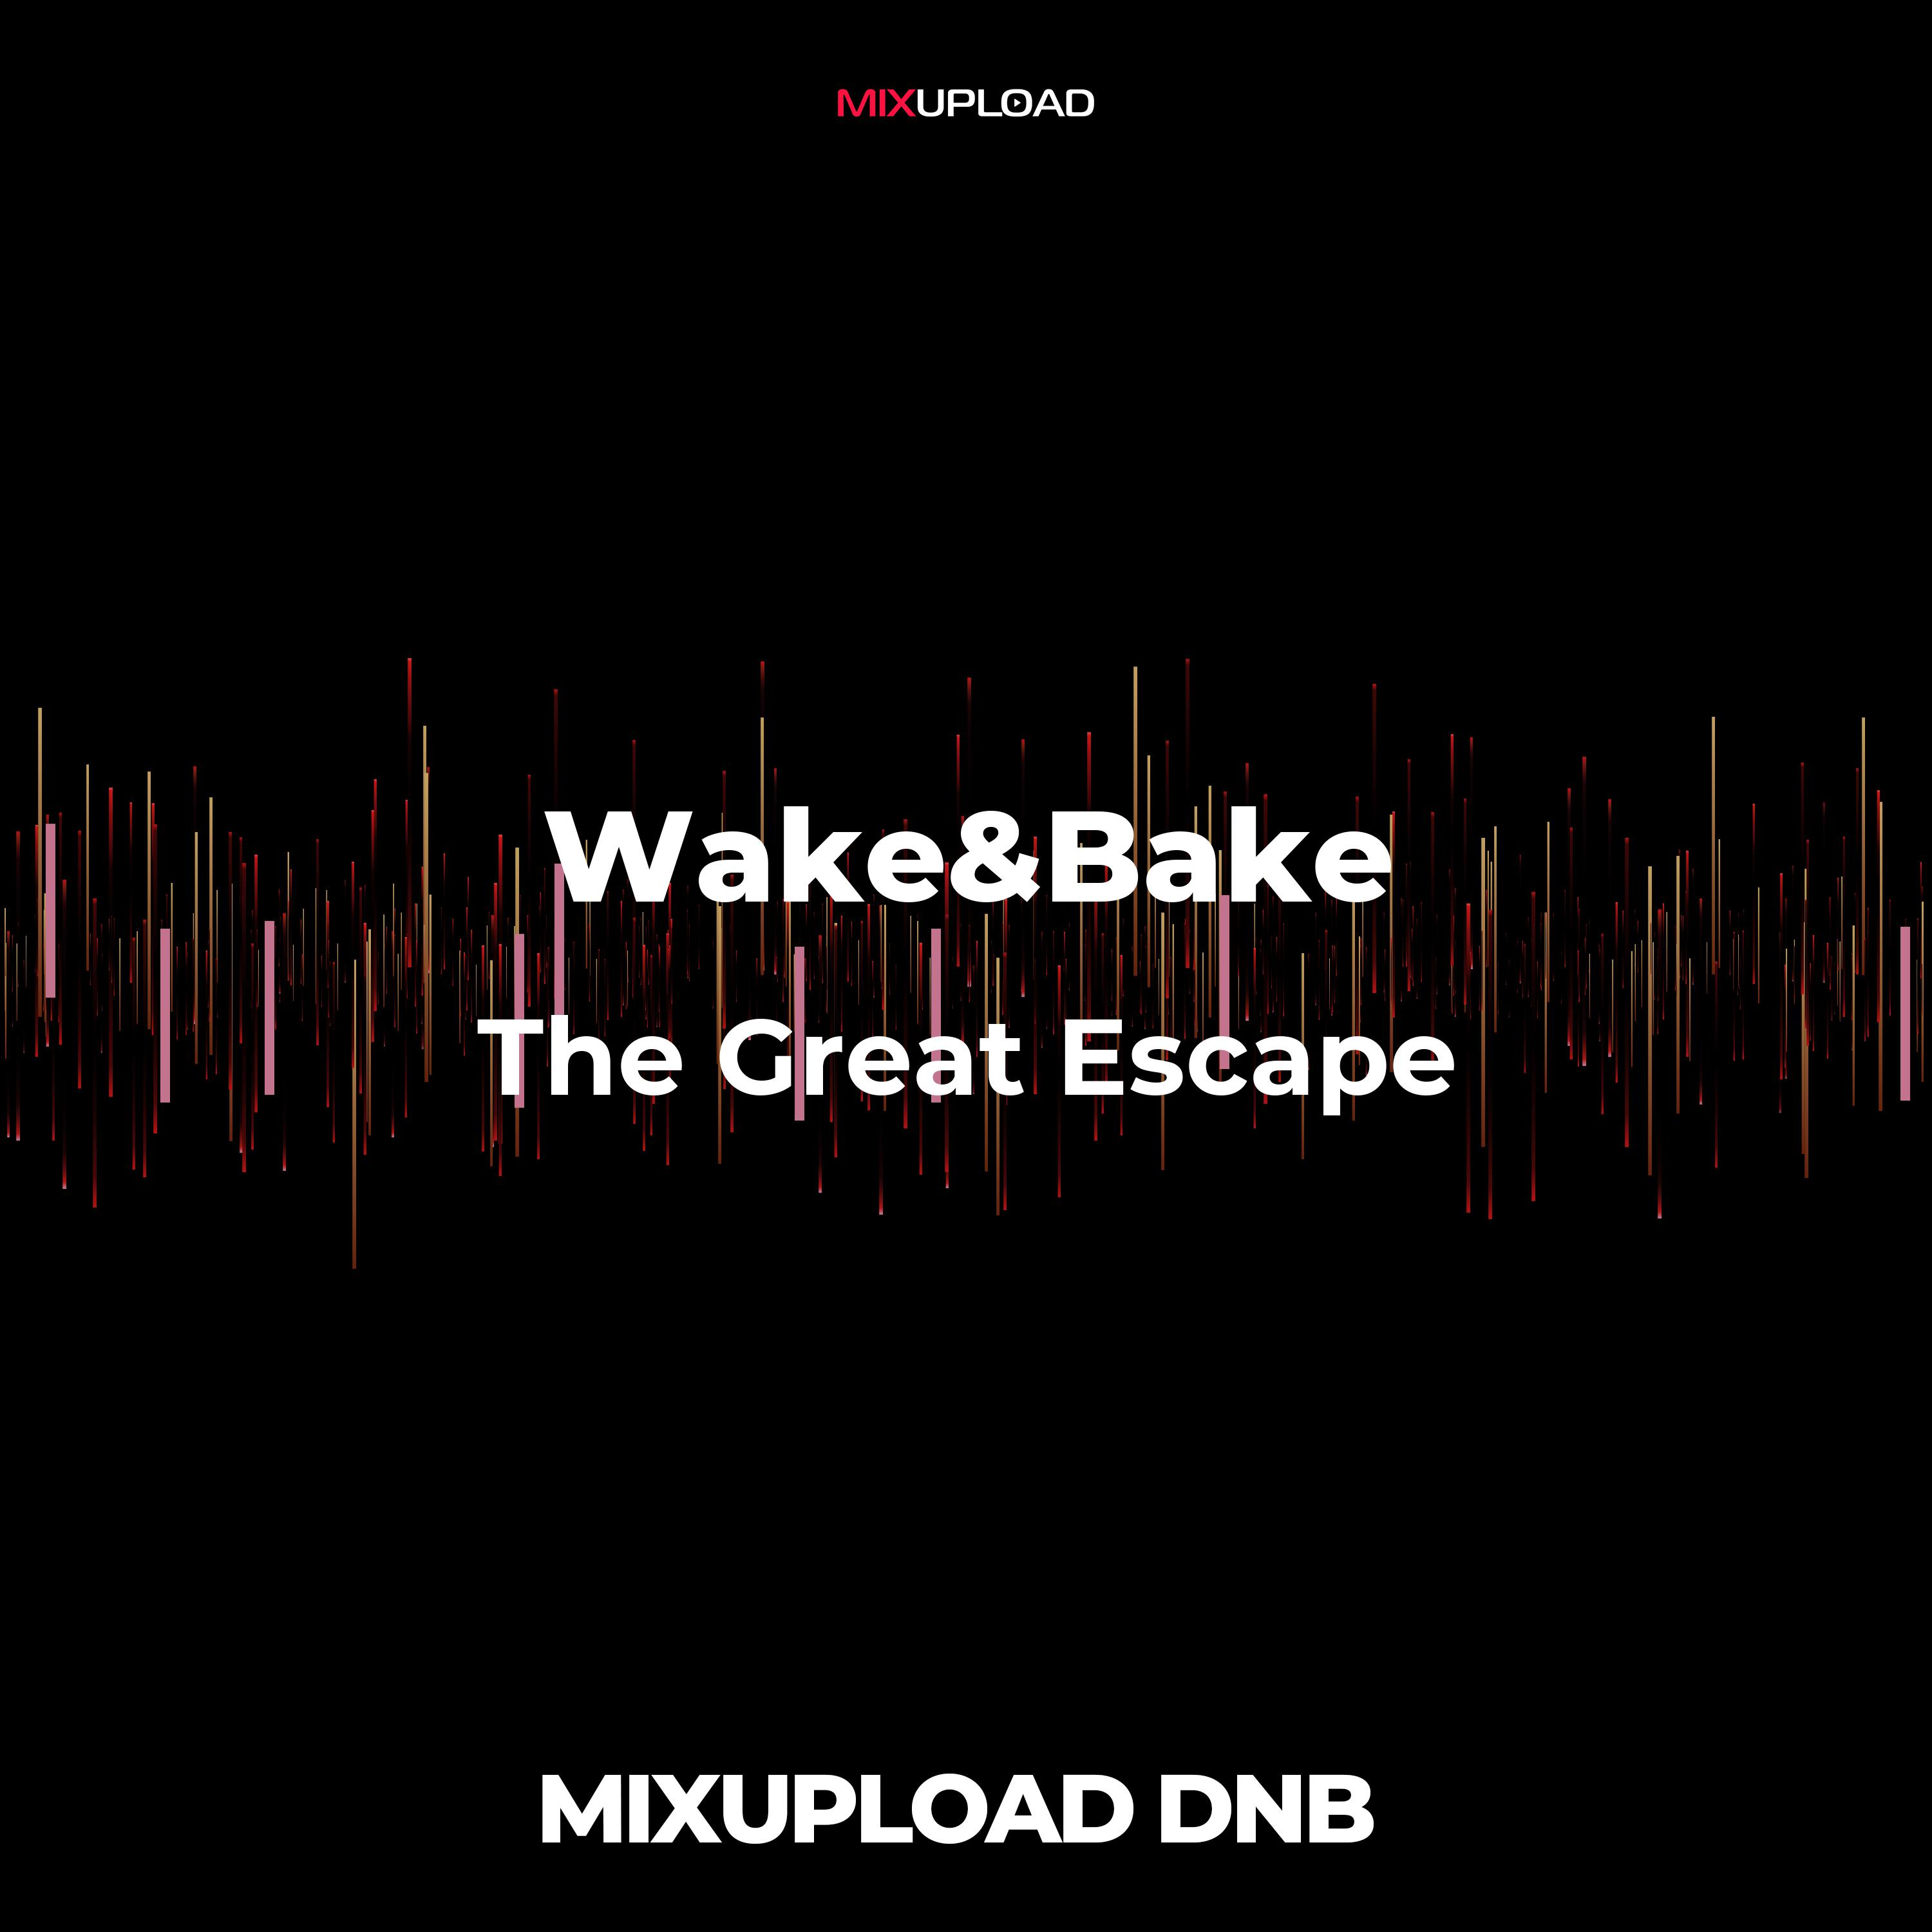 Wake&Bake + 1312 - The Great Escape (Original MIx)